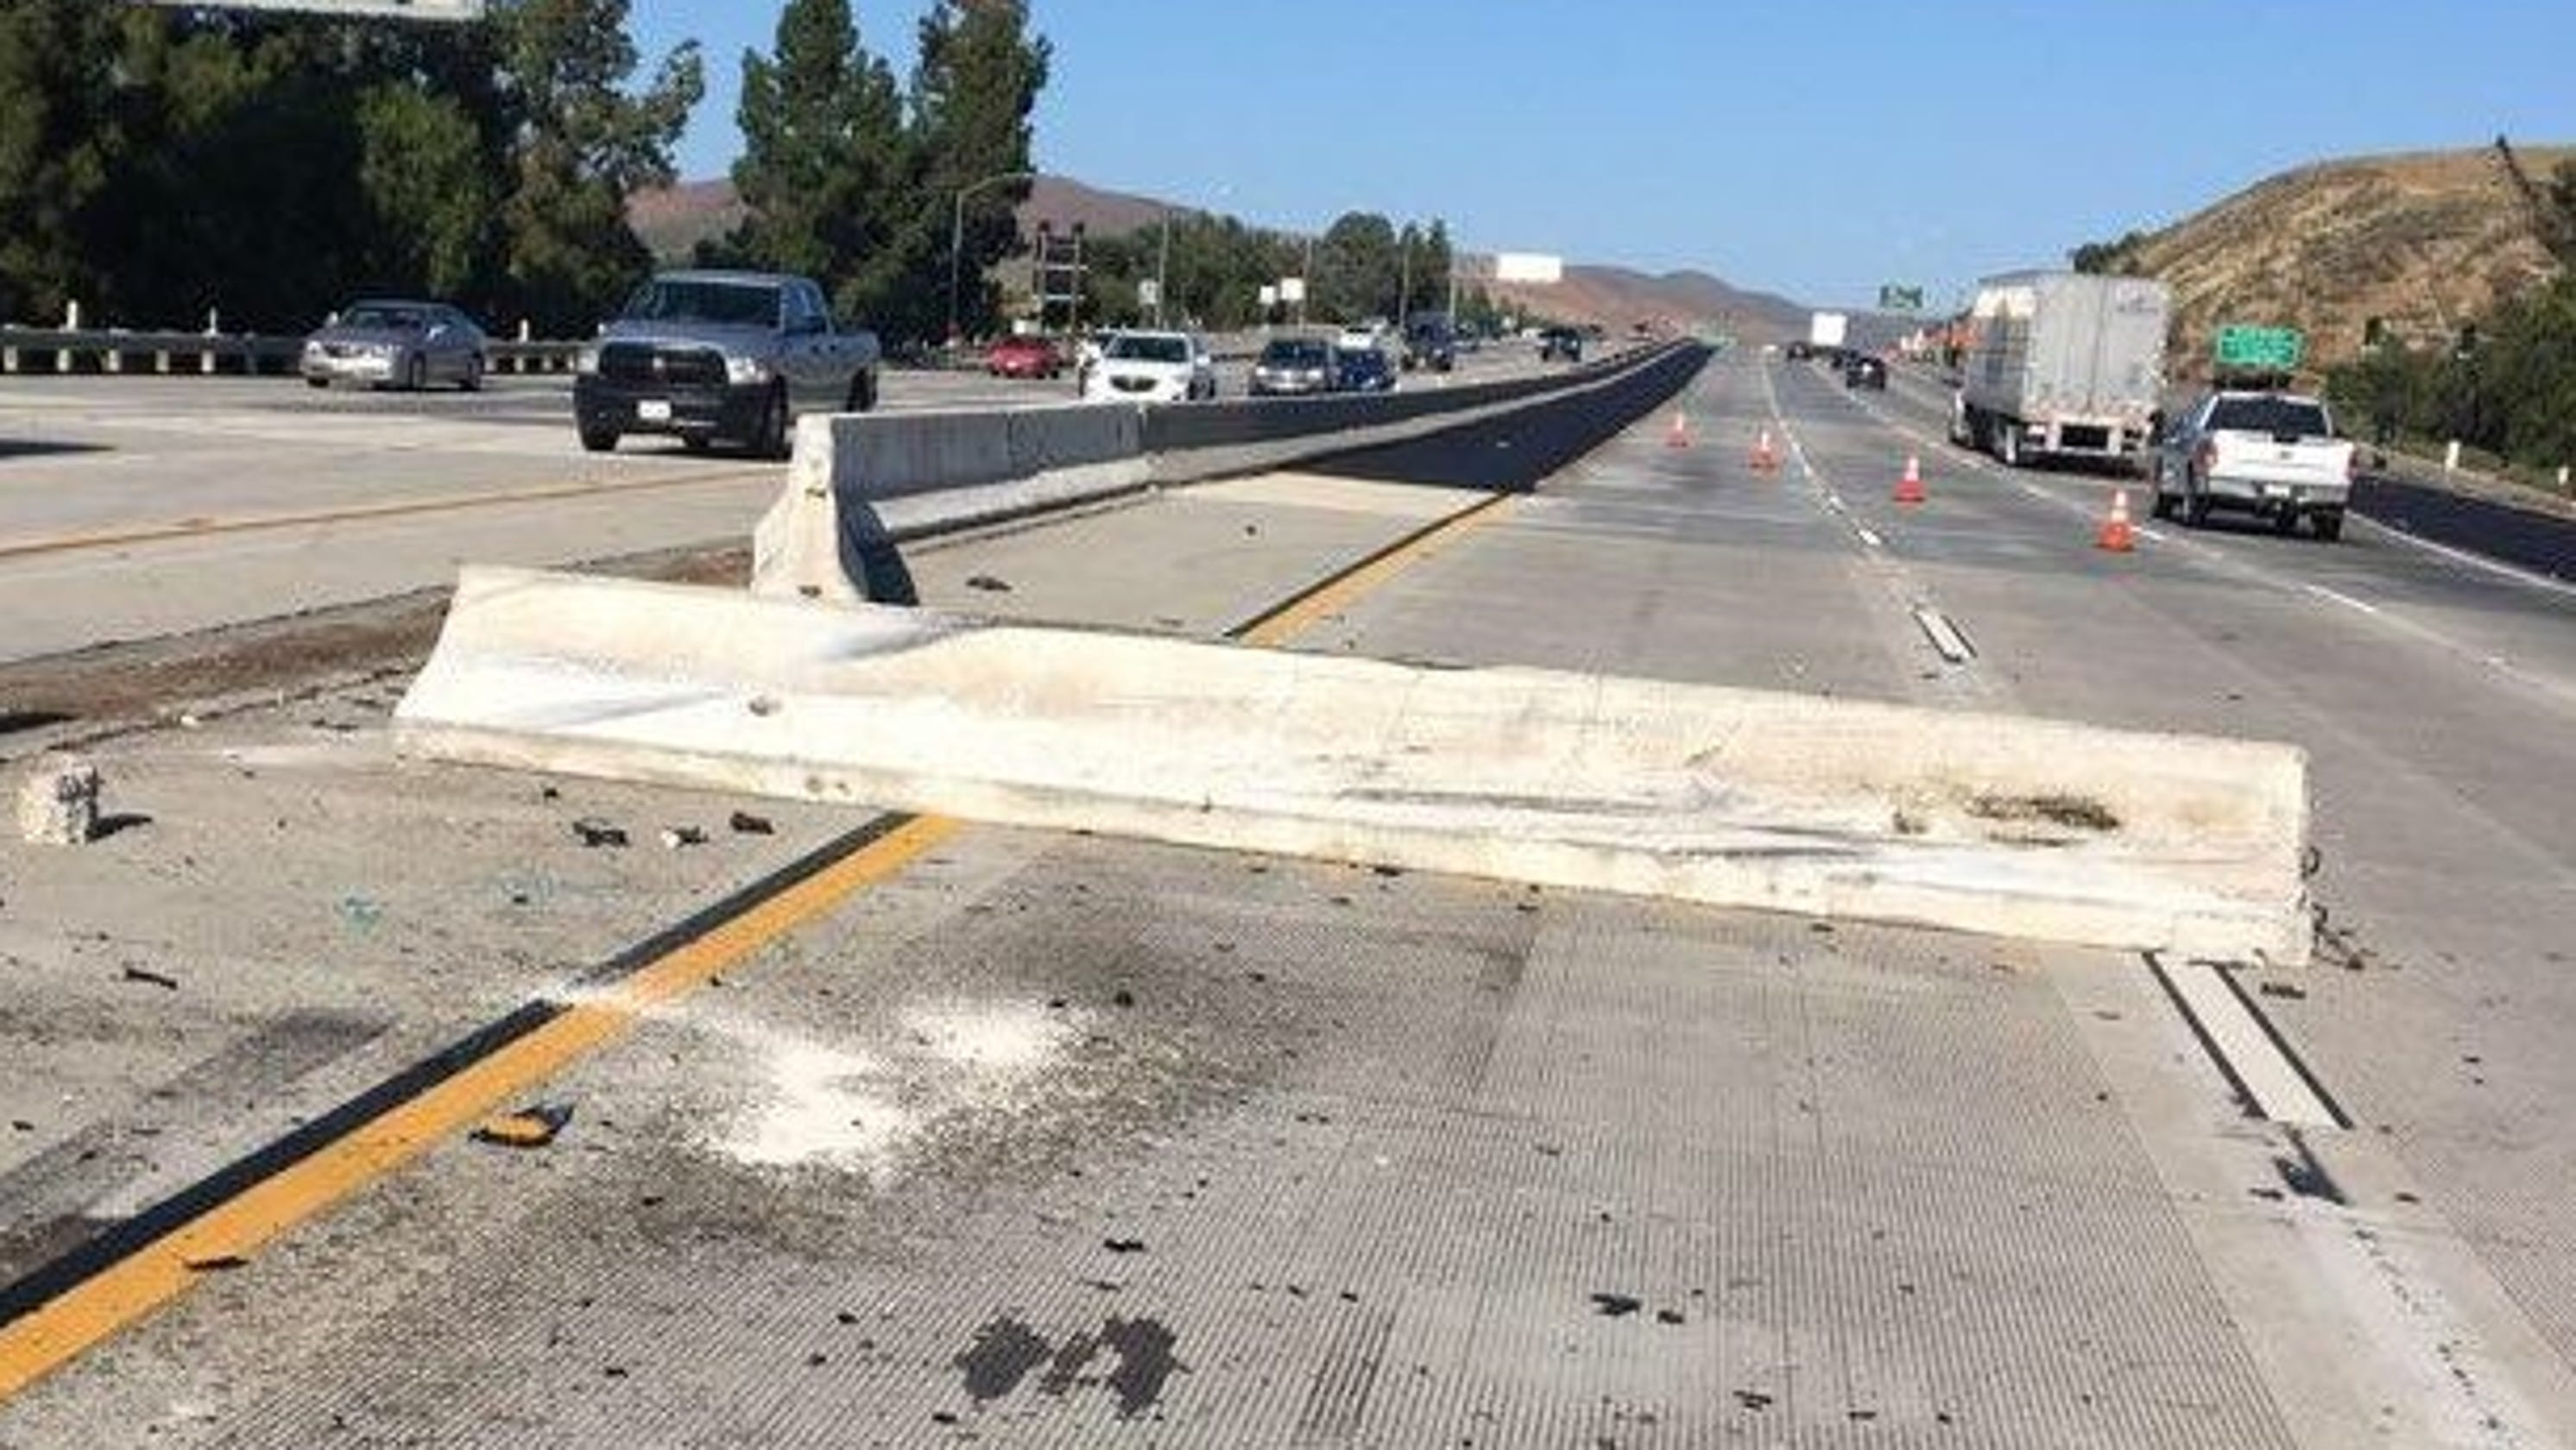 Crash leaves K-rail on Highway 101 in Thousand Oaks, slowing